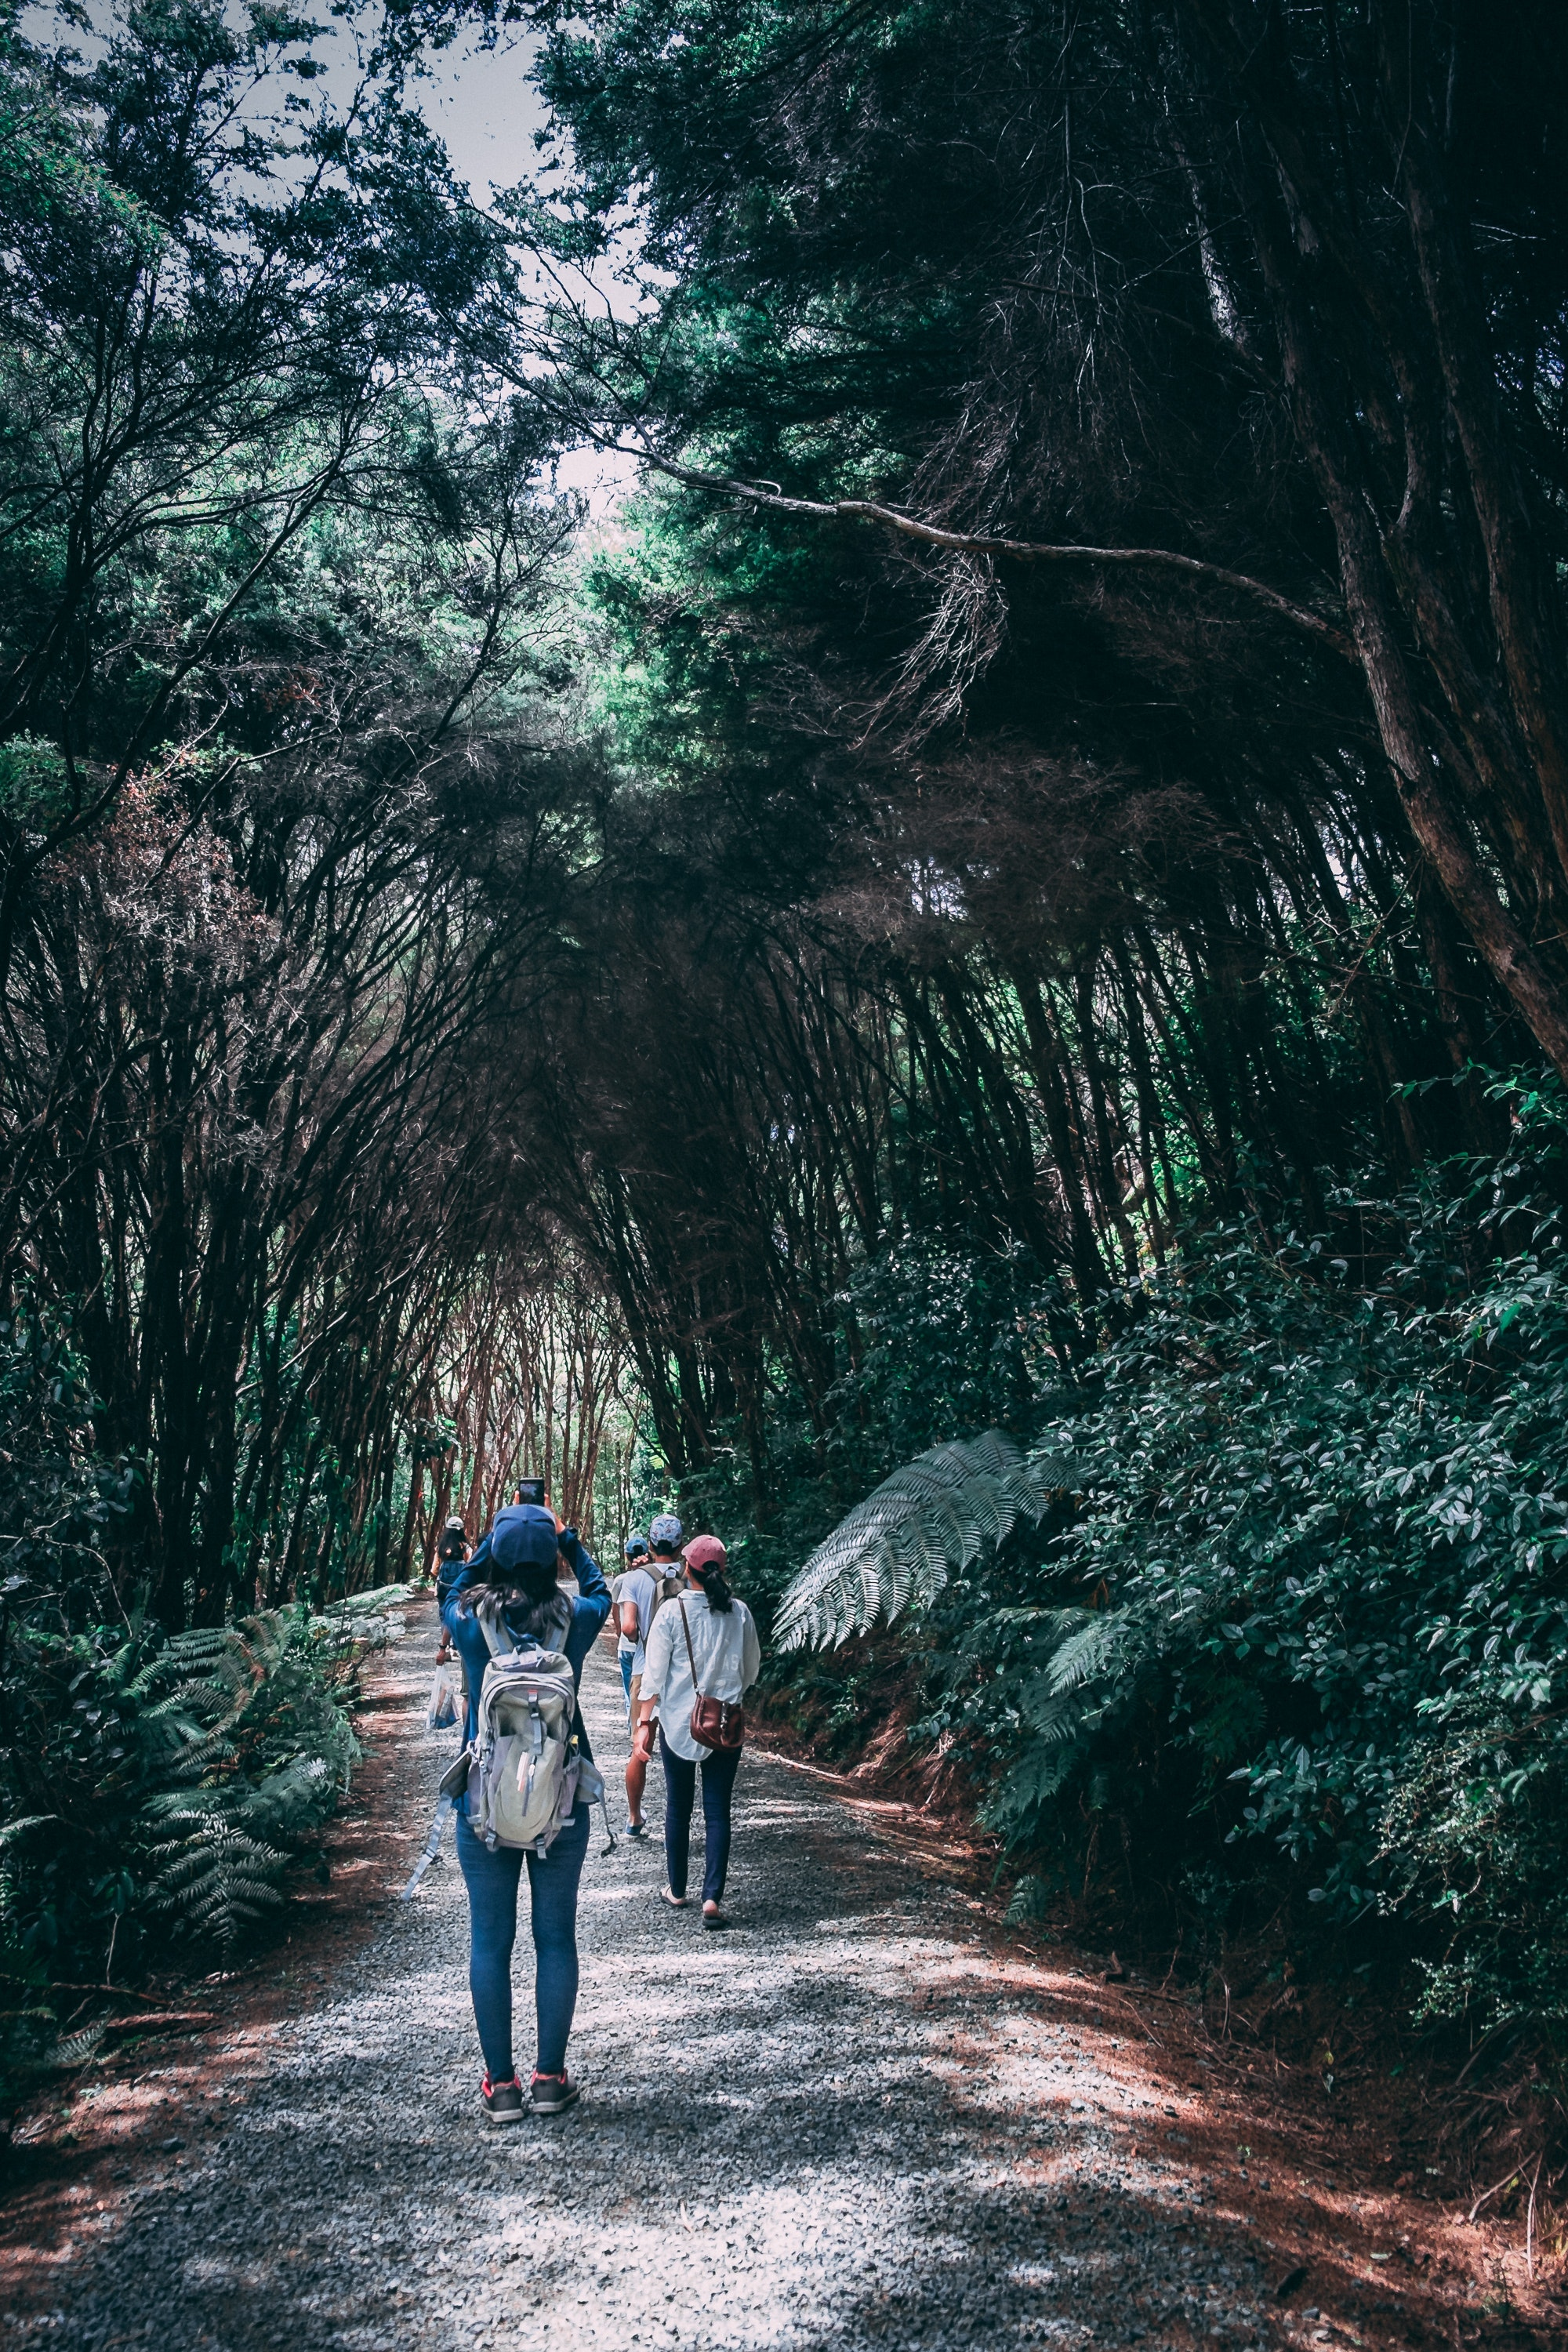 Group of People Walking in Forest, Adult, Scenic, Path, People, HQ Photo